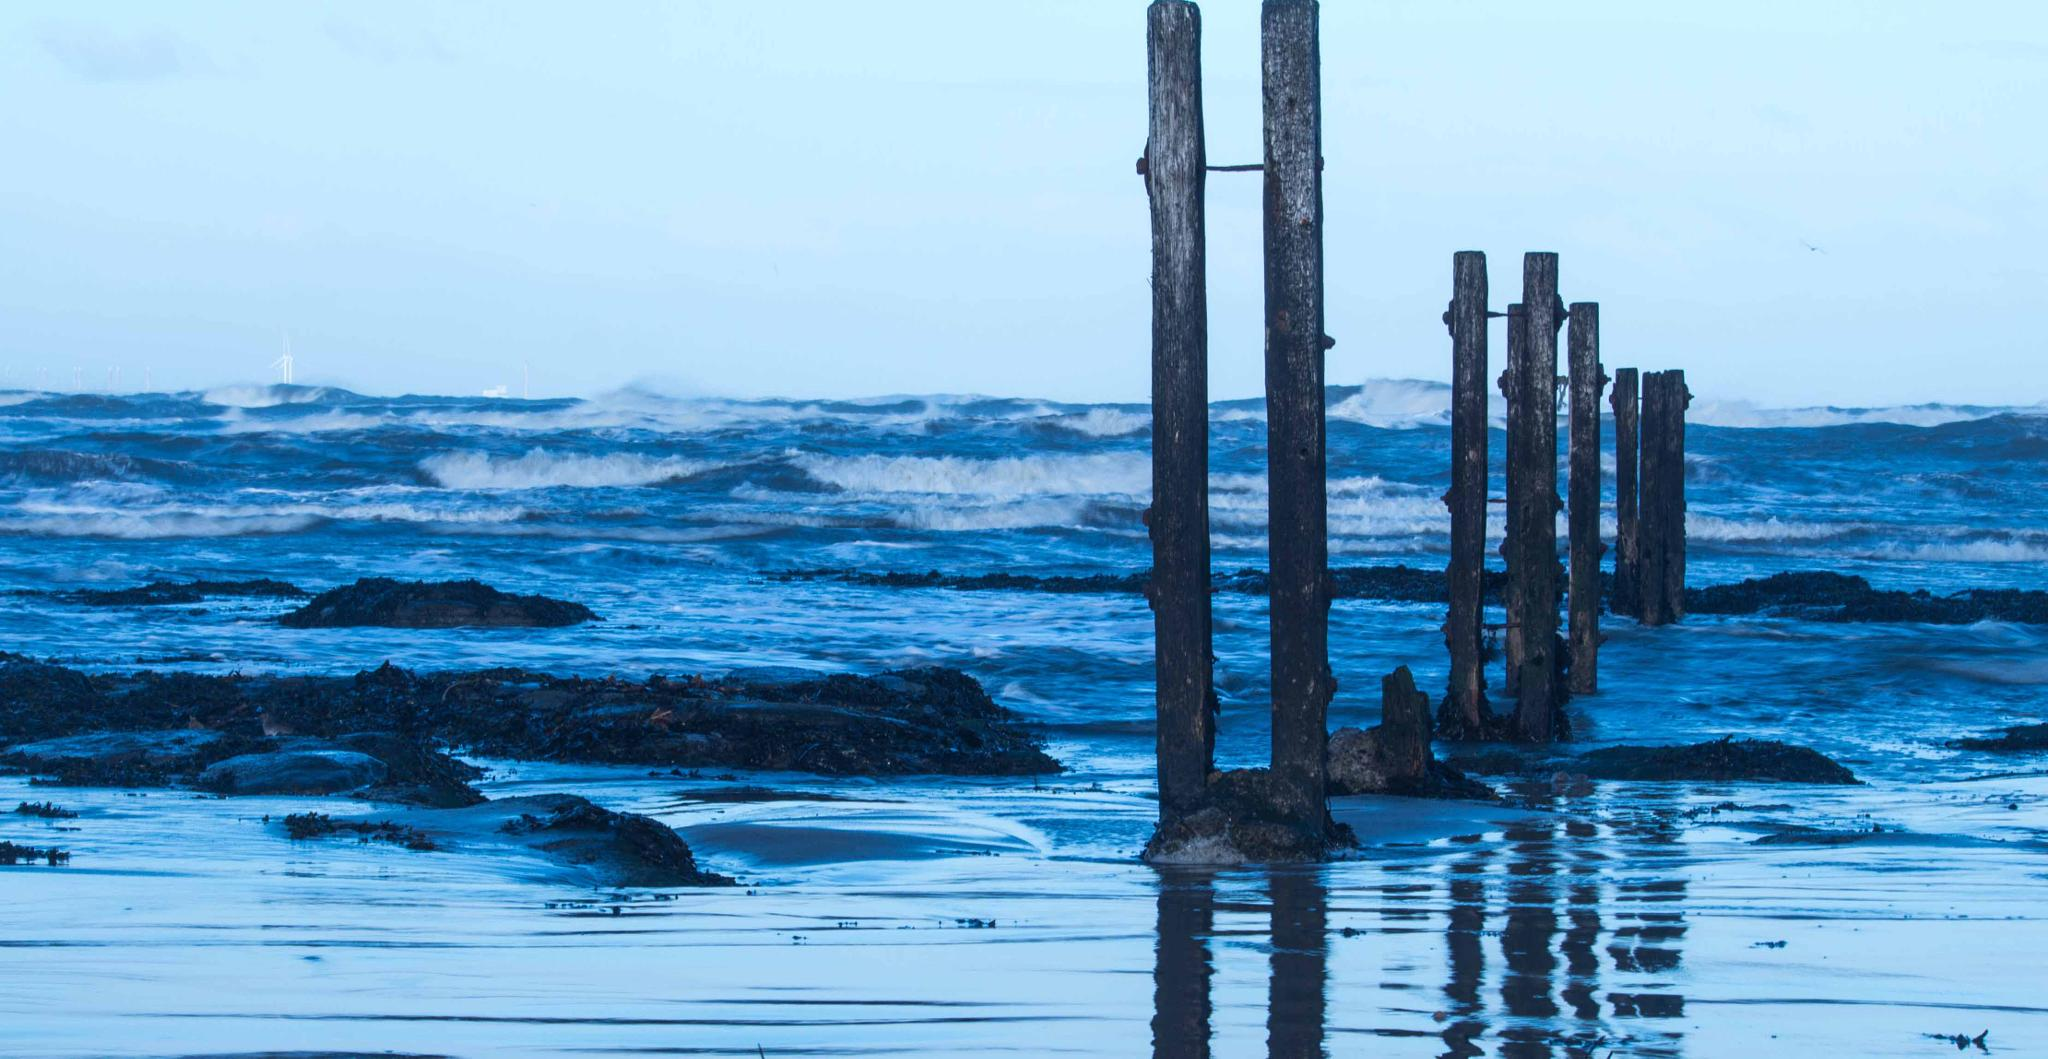 Battered Wooden Sea Defenses with Reflections, Blyth Beach by Mikey Holmes